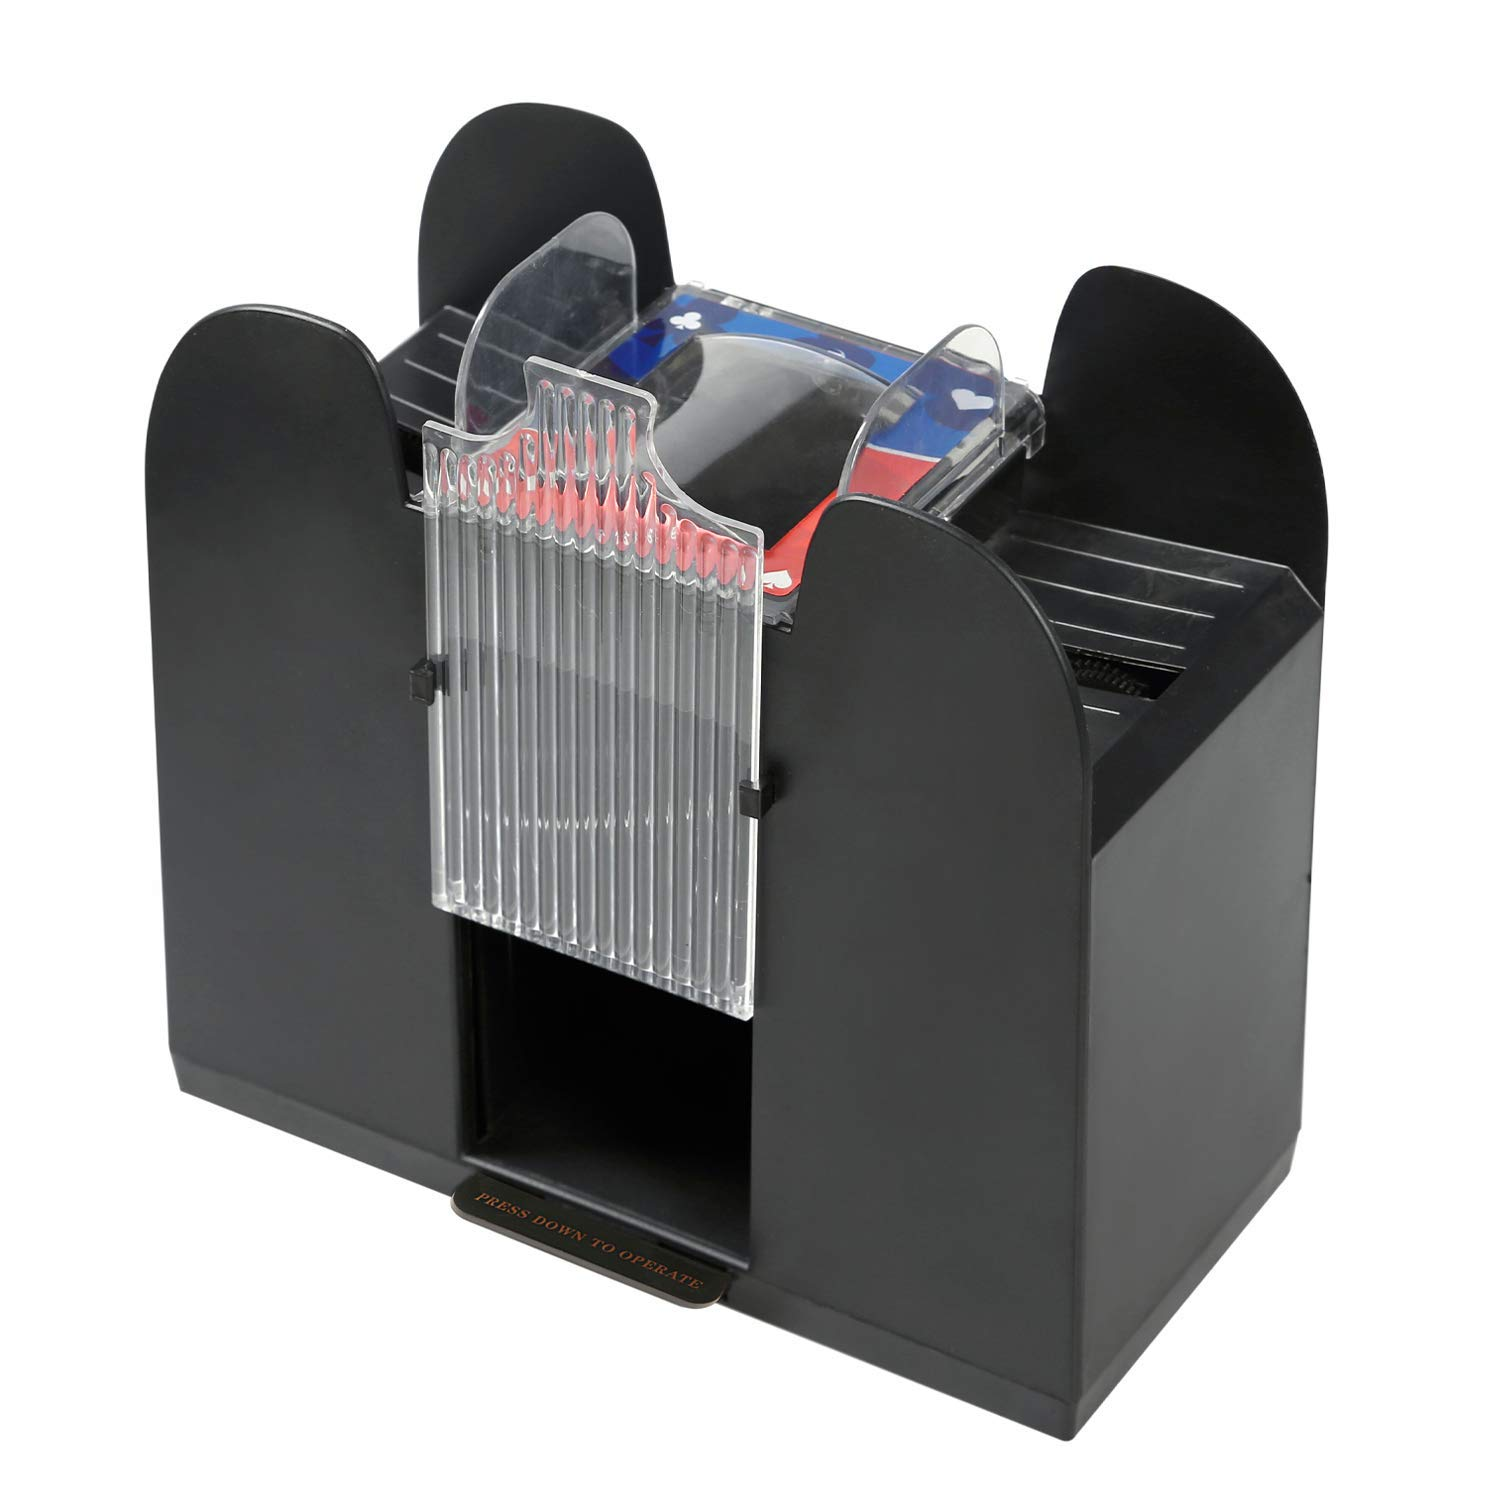 Premium Automatic Card Shuffler by Rally and Roar - Battery Operated, Holds  up to 4 Decks, Professional Cards Shuffling Machine - Shuffles Quickly,